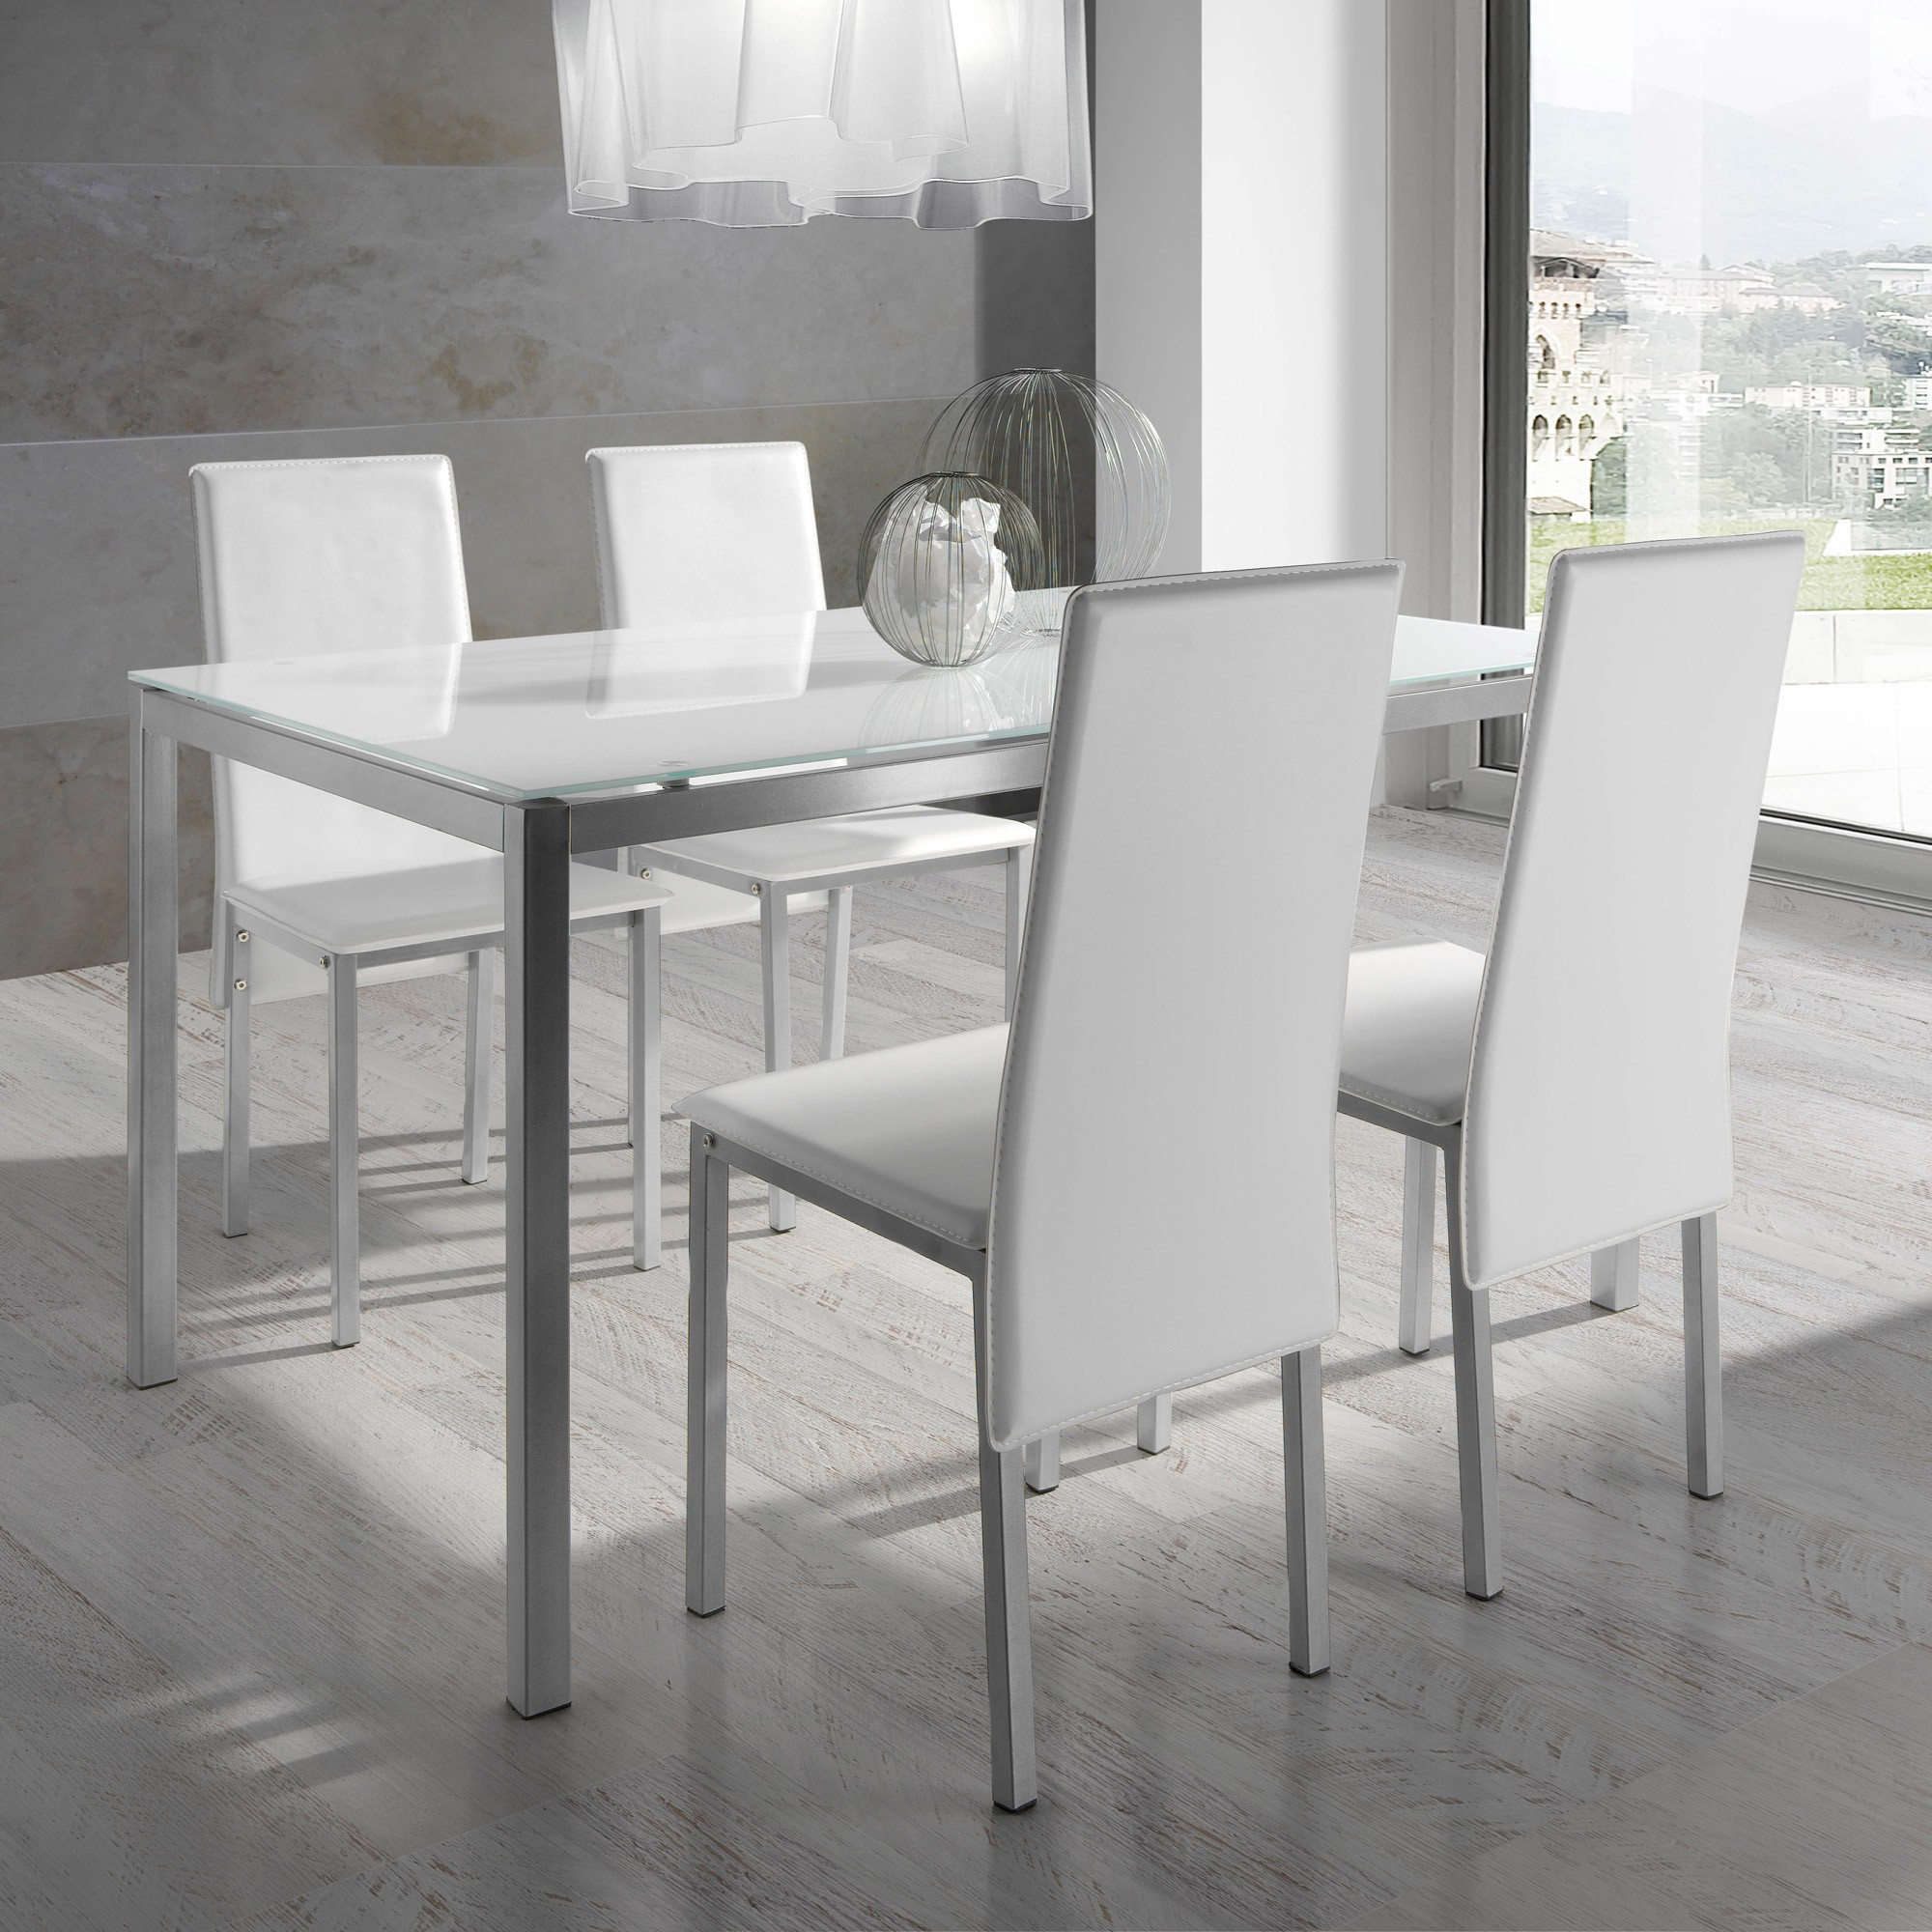 Ensemble table et chaise salle a manger but chaise for Table et chaise de salle a manger design